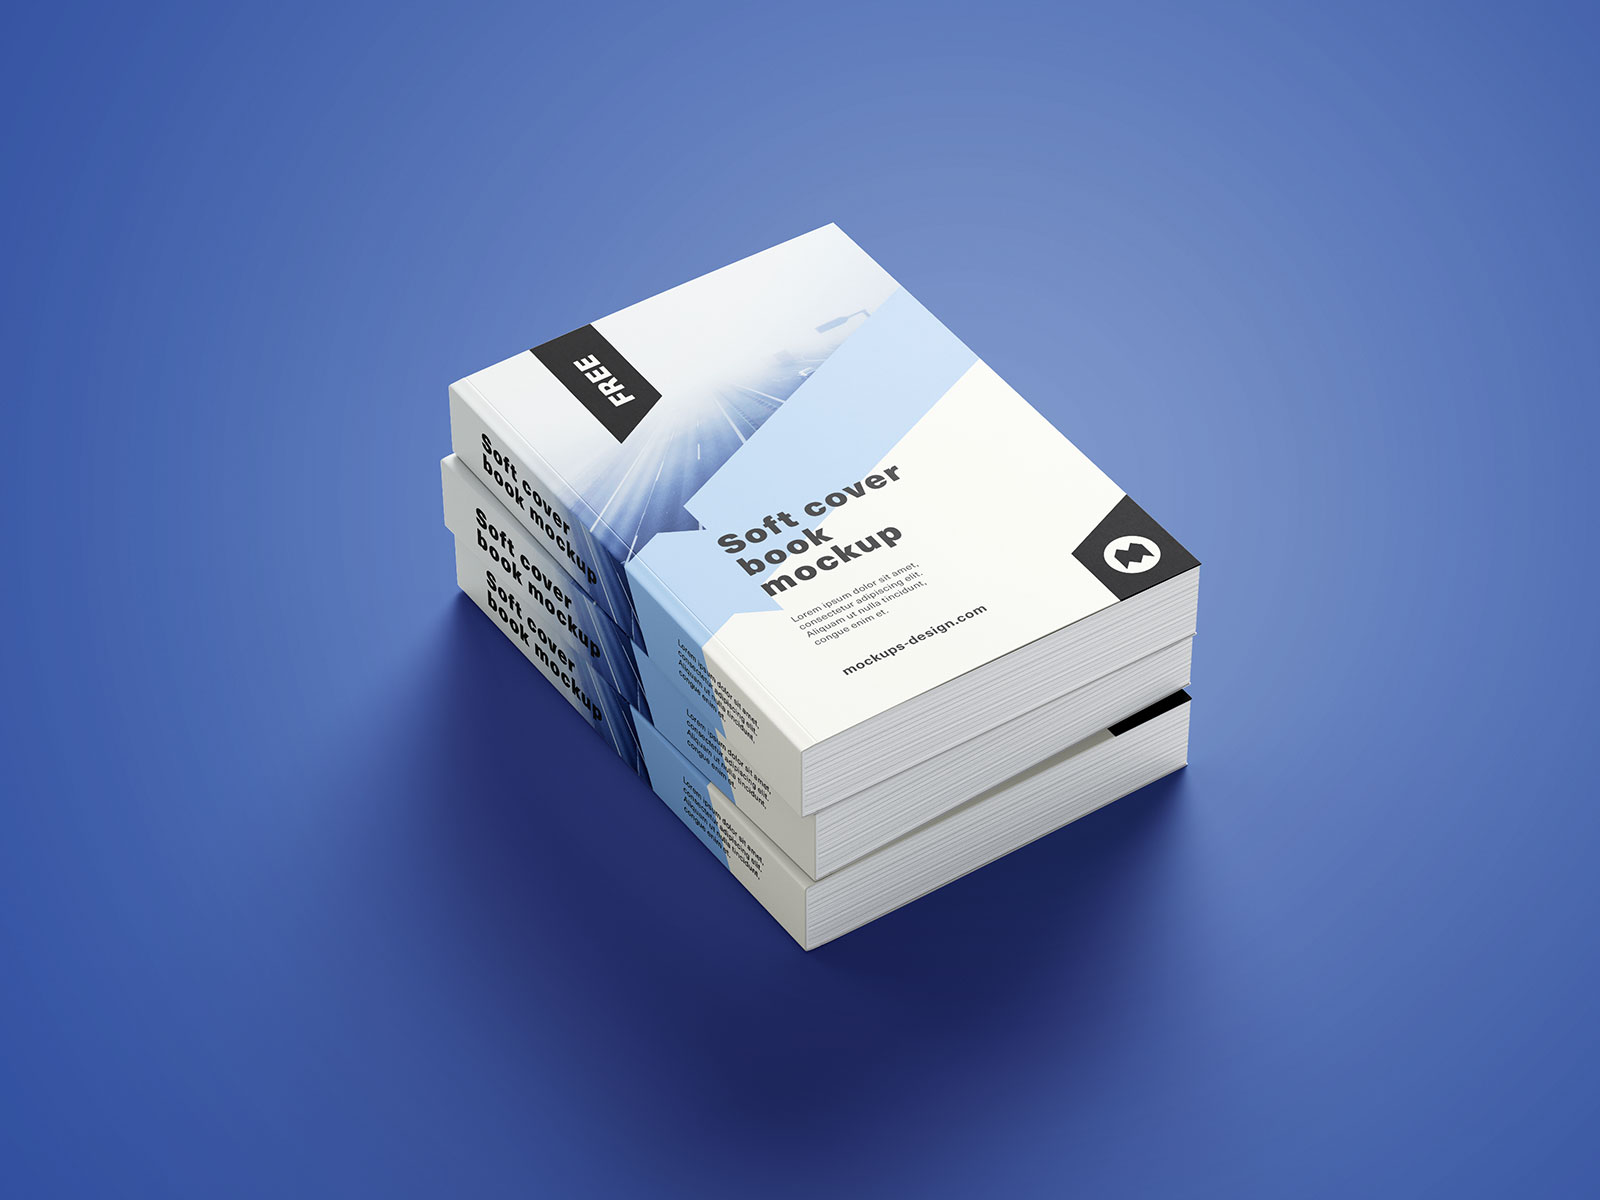 Softcover Book Mockup PSD (2)